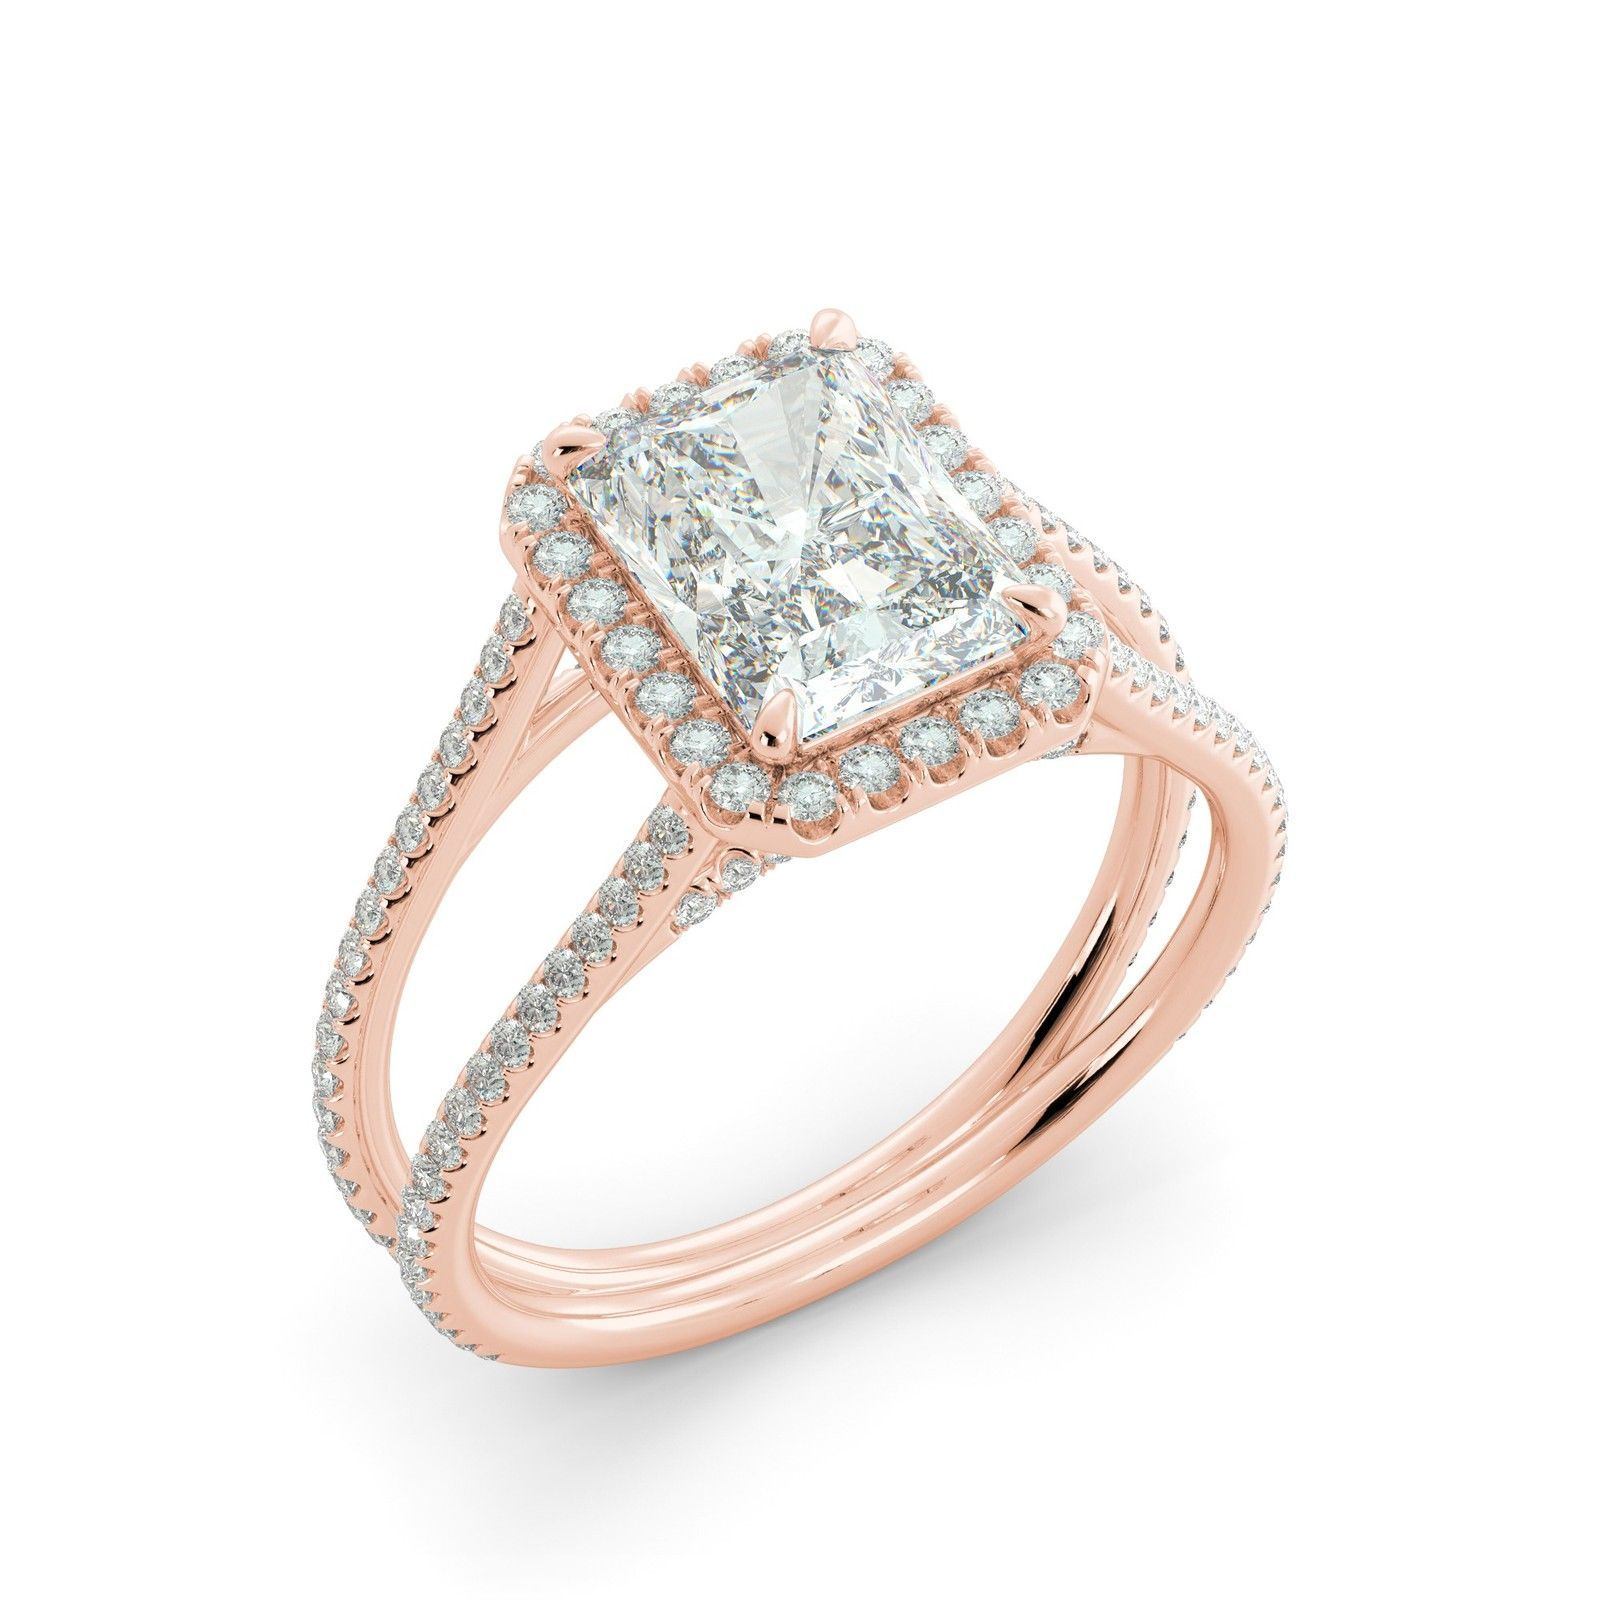 Awesome Engagement Wedding Chess Mens Ring 14K Rose Gold Plated Round Cut Black CZ Diamond